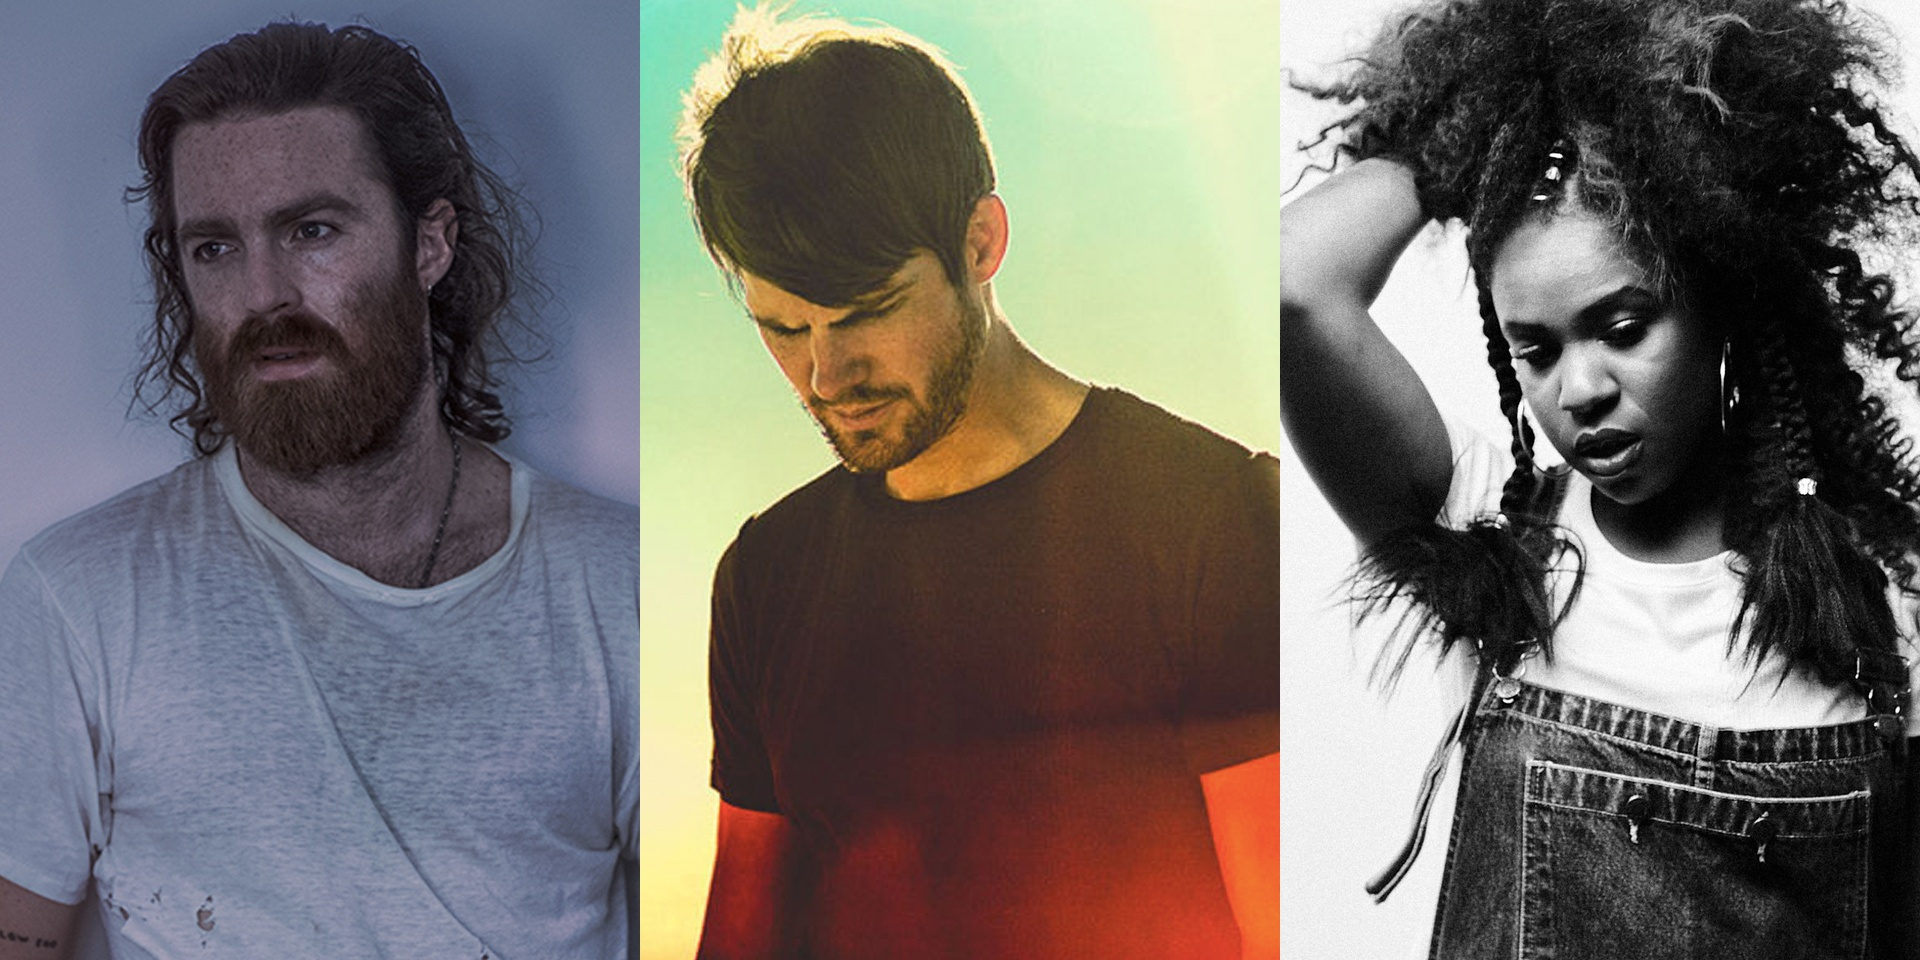 Here's the full schedule for Laneway Festival 2017